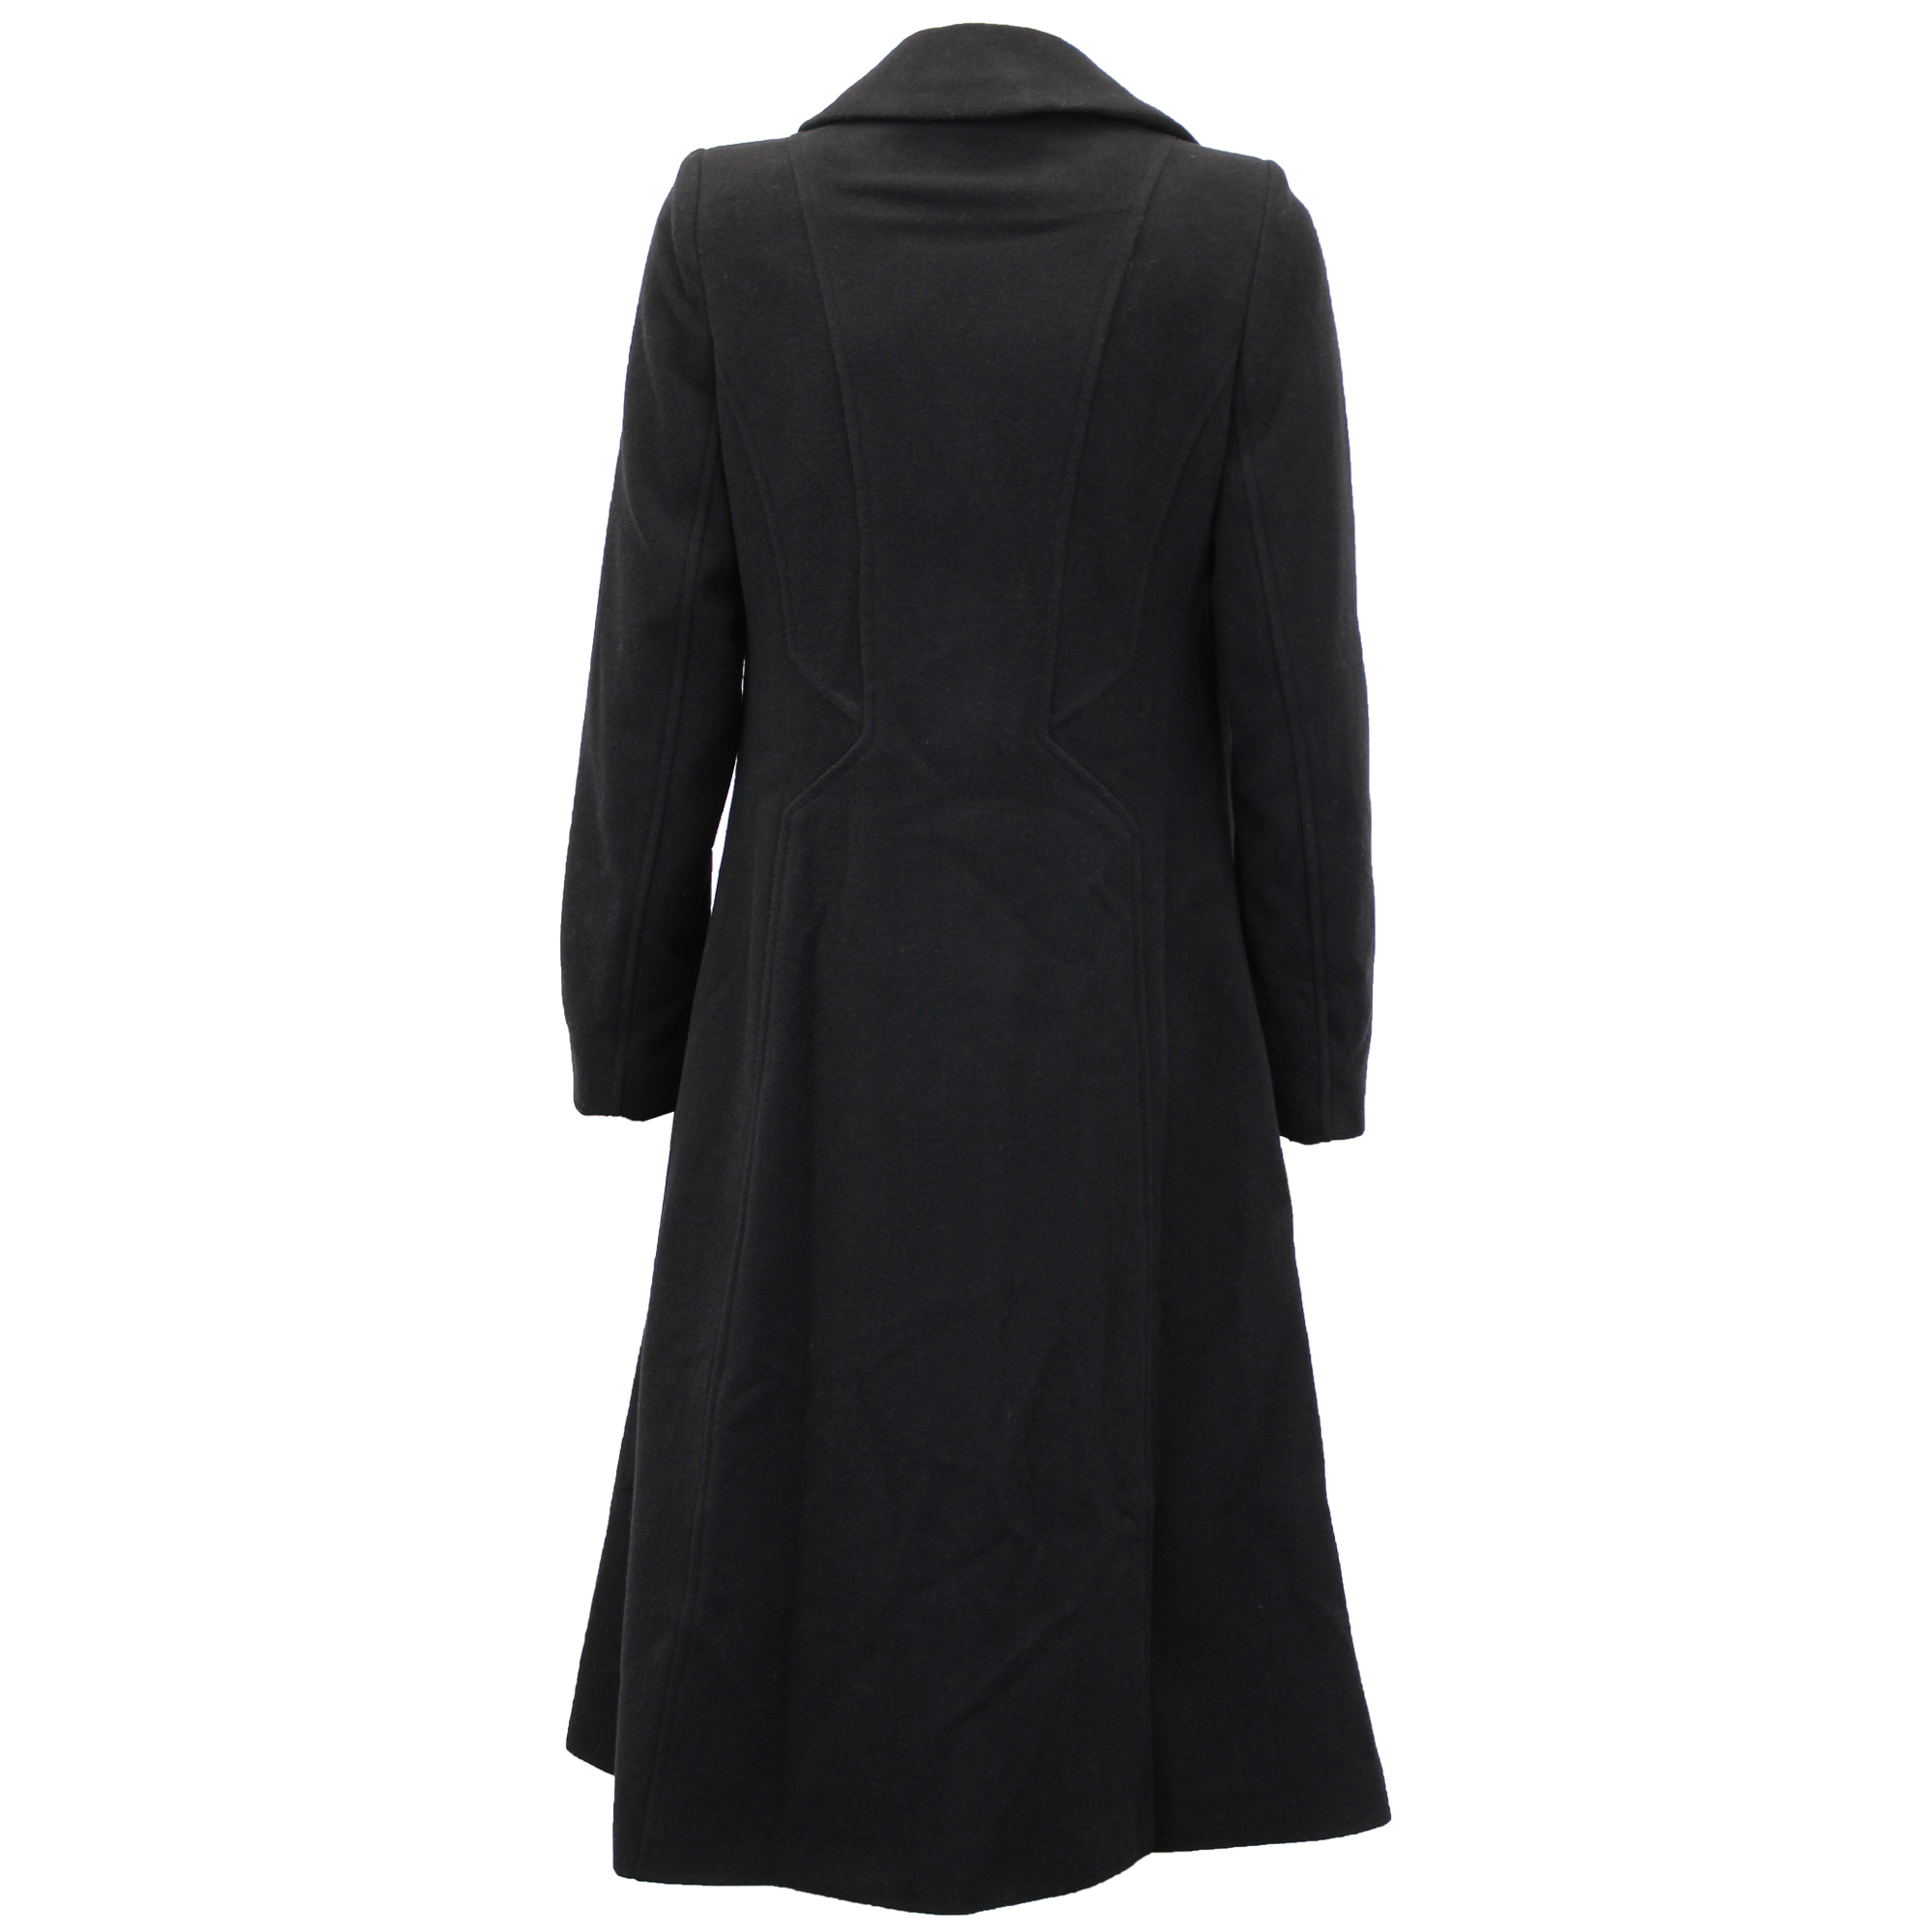 Ladies-Wool-Cashmere-Coat-Womens-Jacket-Long-Fashion-Warm-Casual-Winter-New thumbnail 3